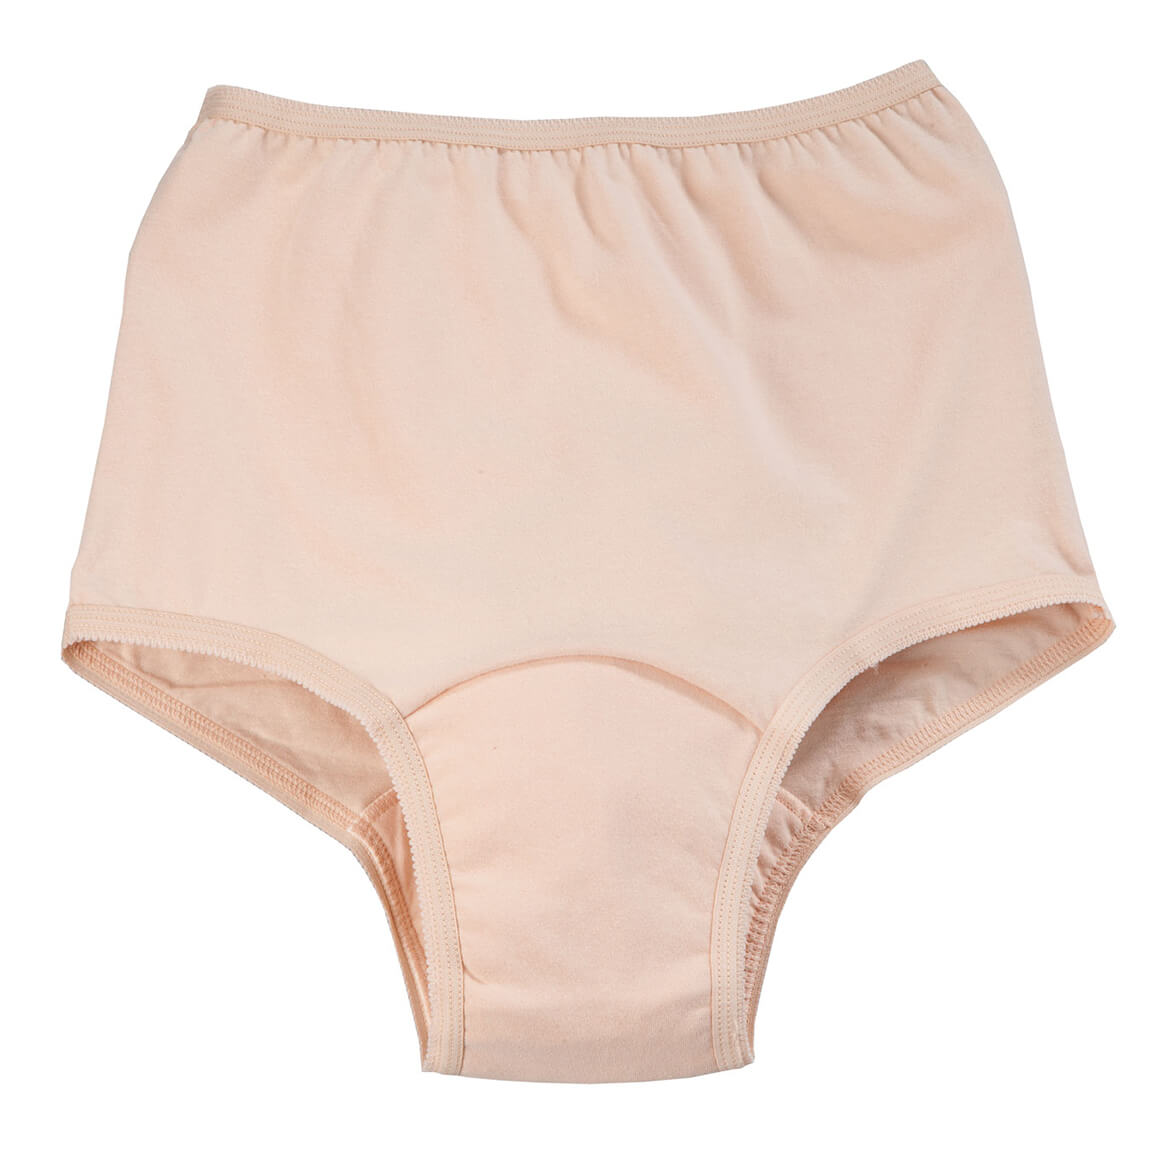 Incontinence Panties For Women, Beige - 10 oz.-348103